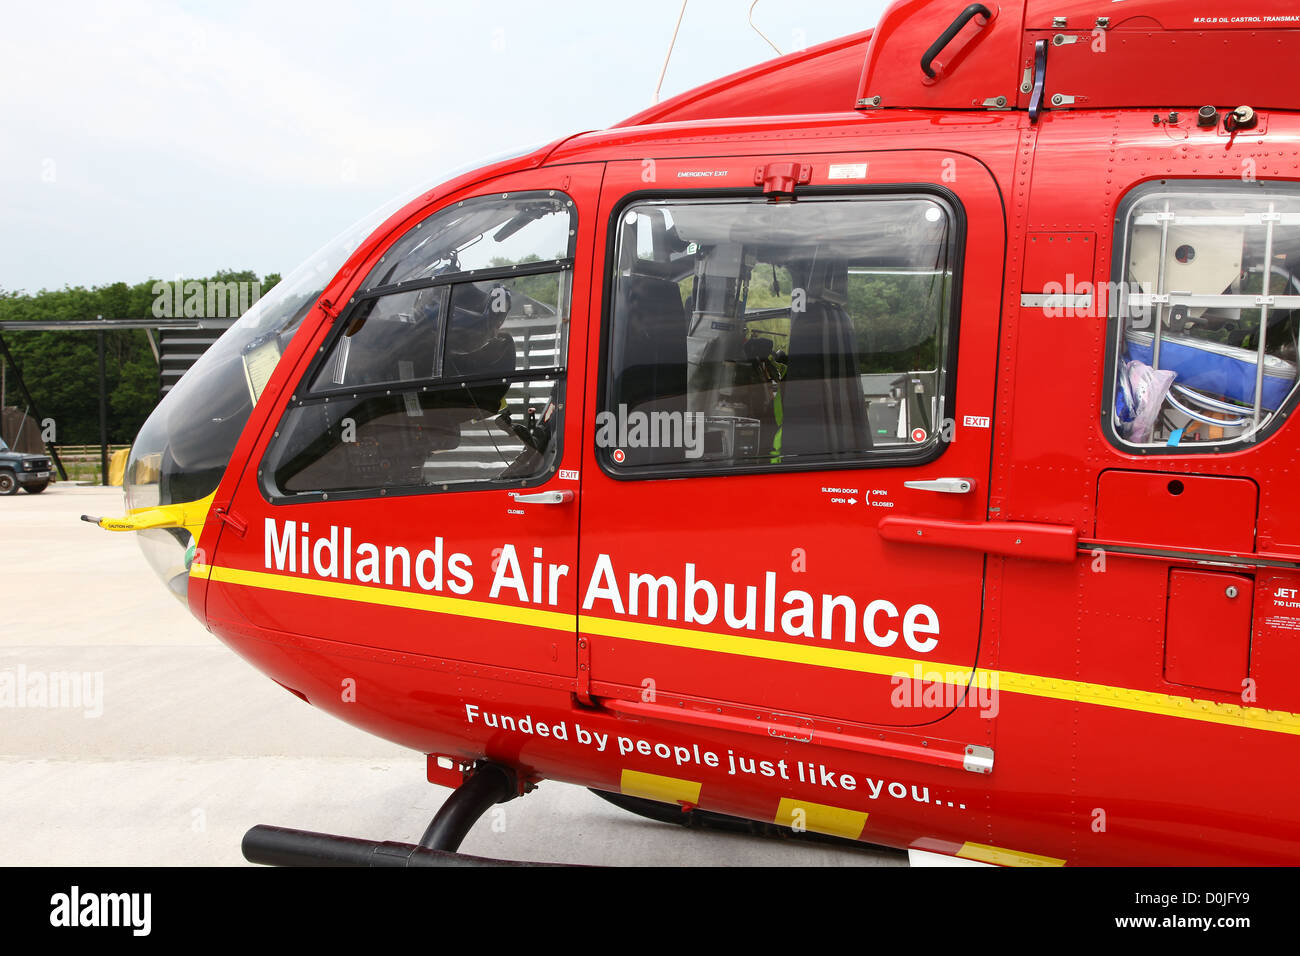 A Eurocopter EC135 helicopter used by the East Midlands Air Ambulance service emergency rescue - Stock Image